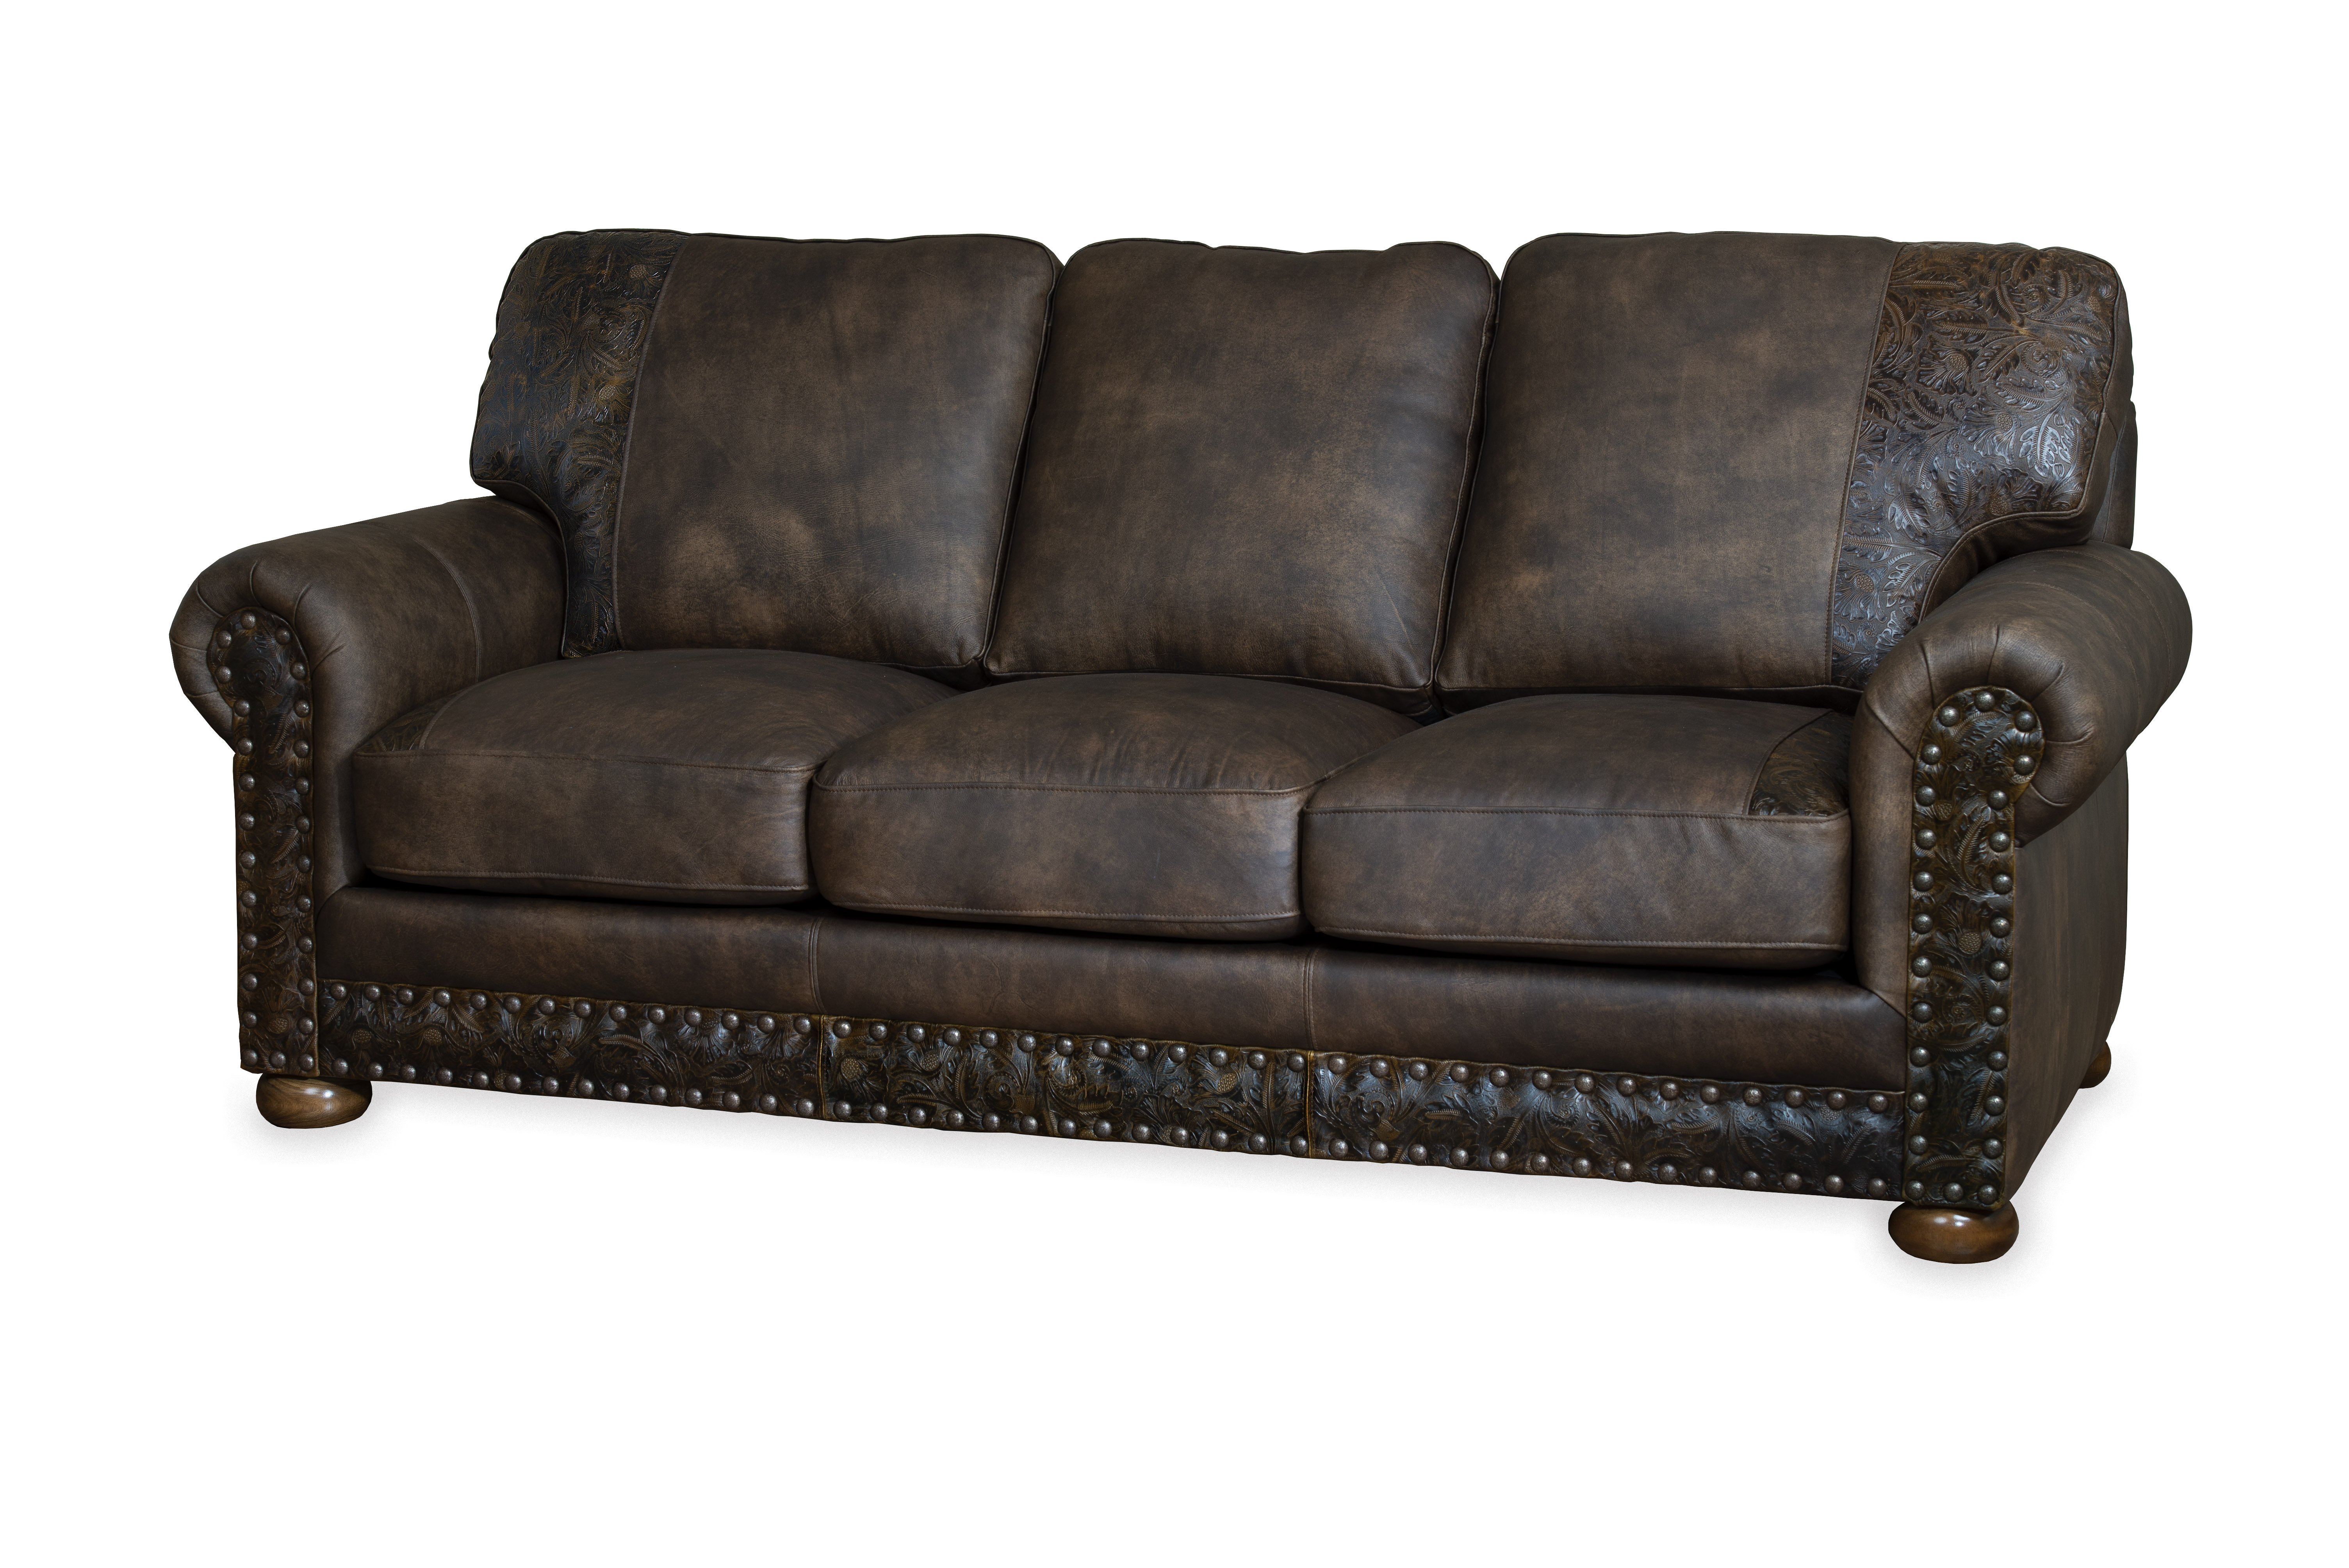 Gunslinger Sofa